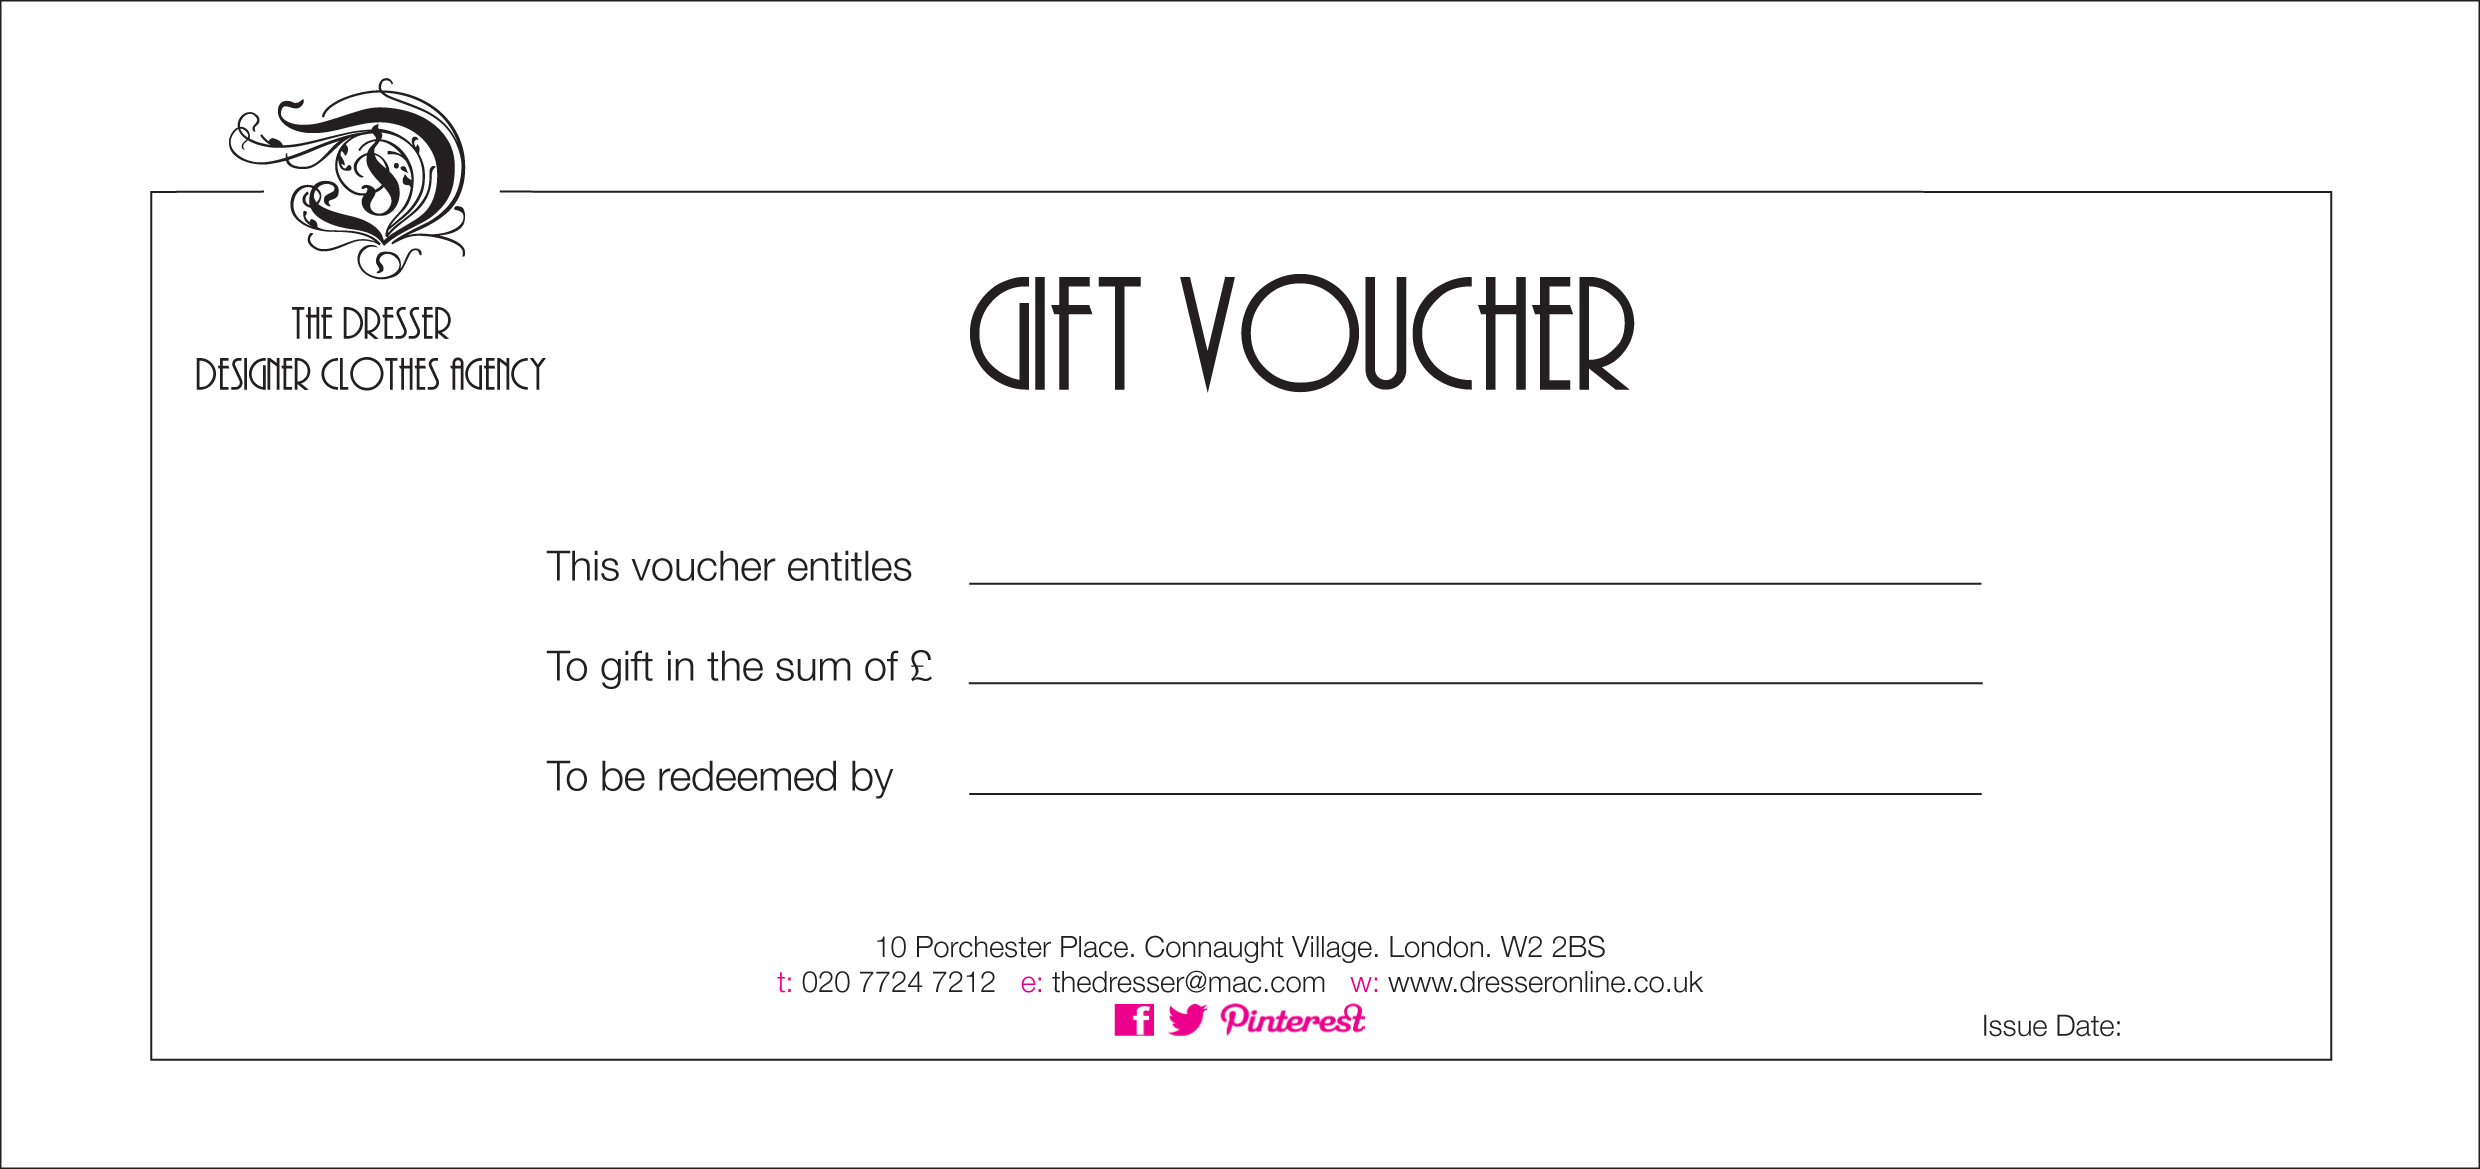 download certificate template word - gift voucher template word free download planner